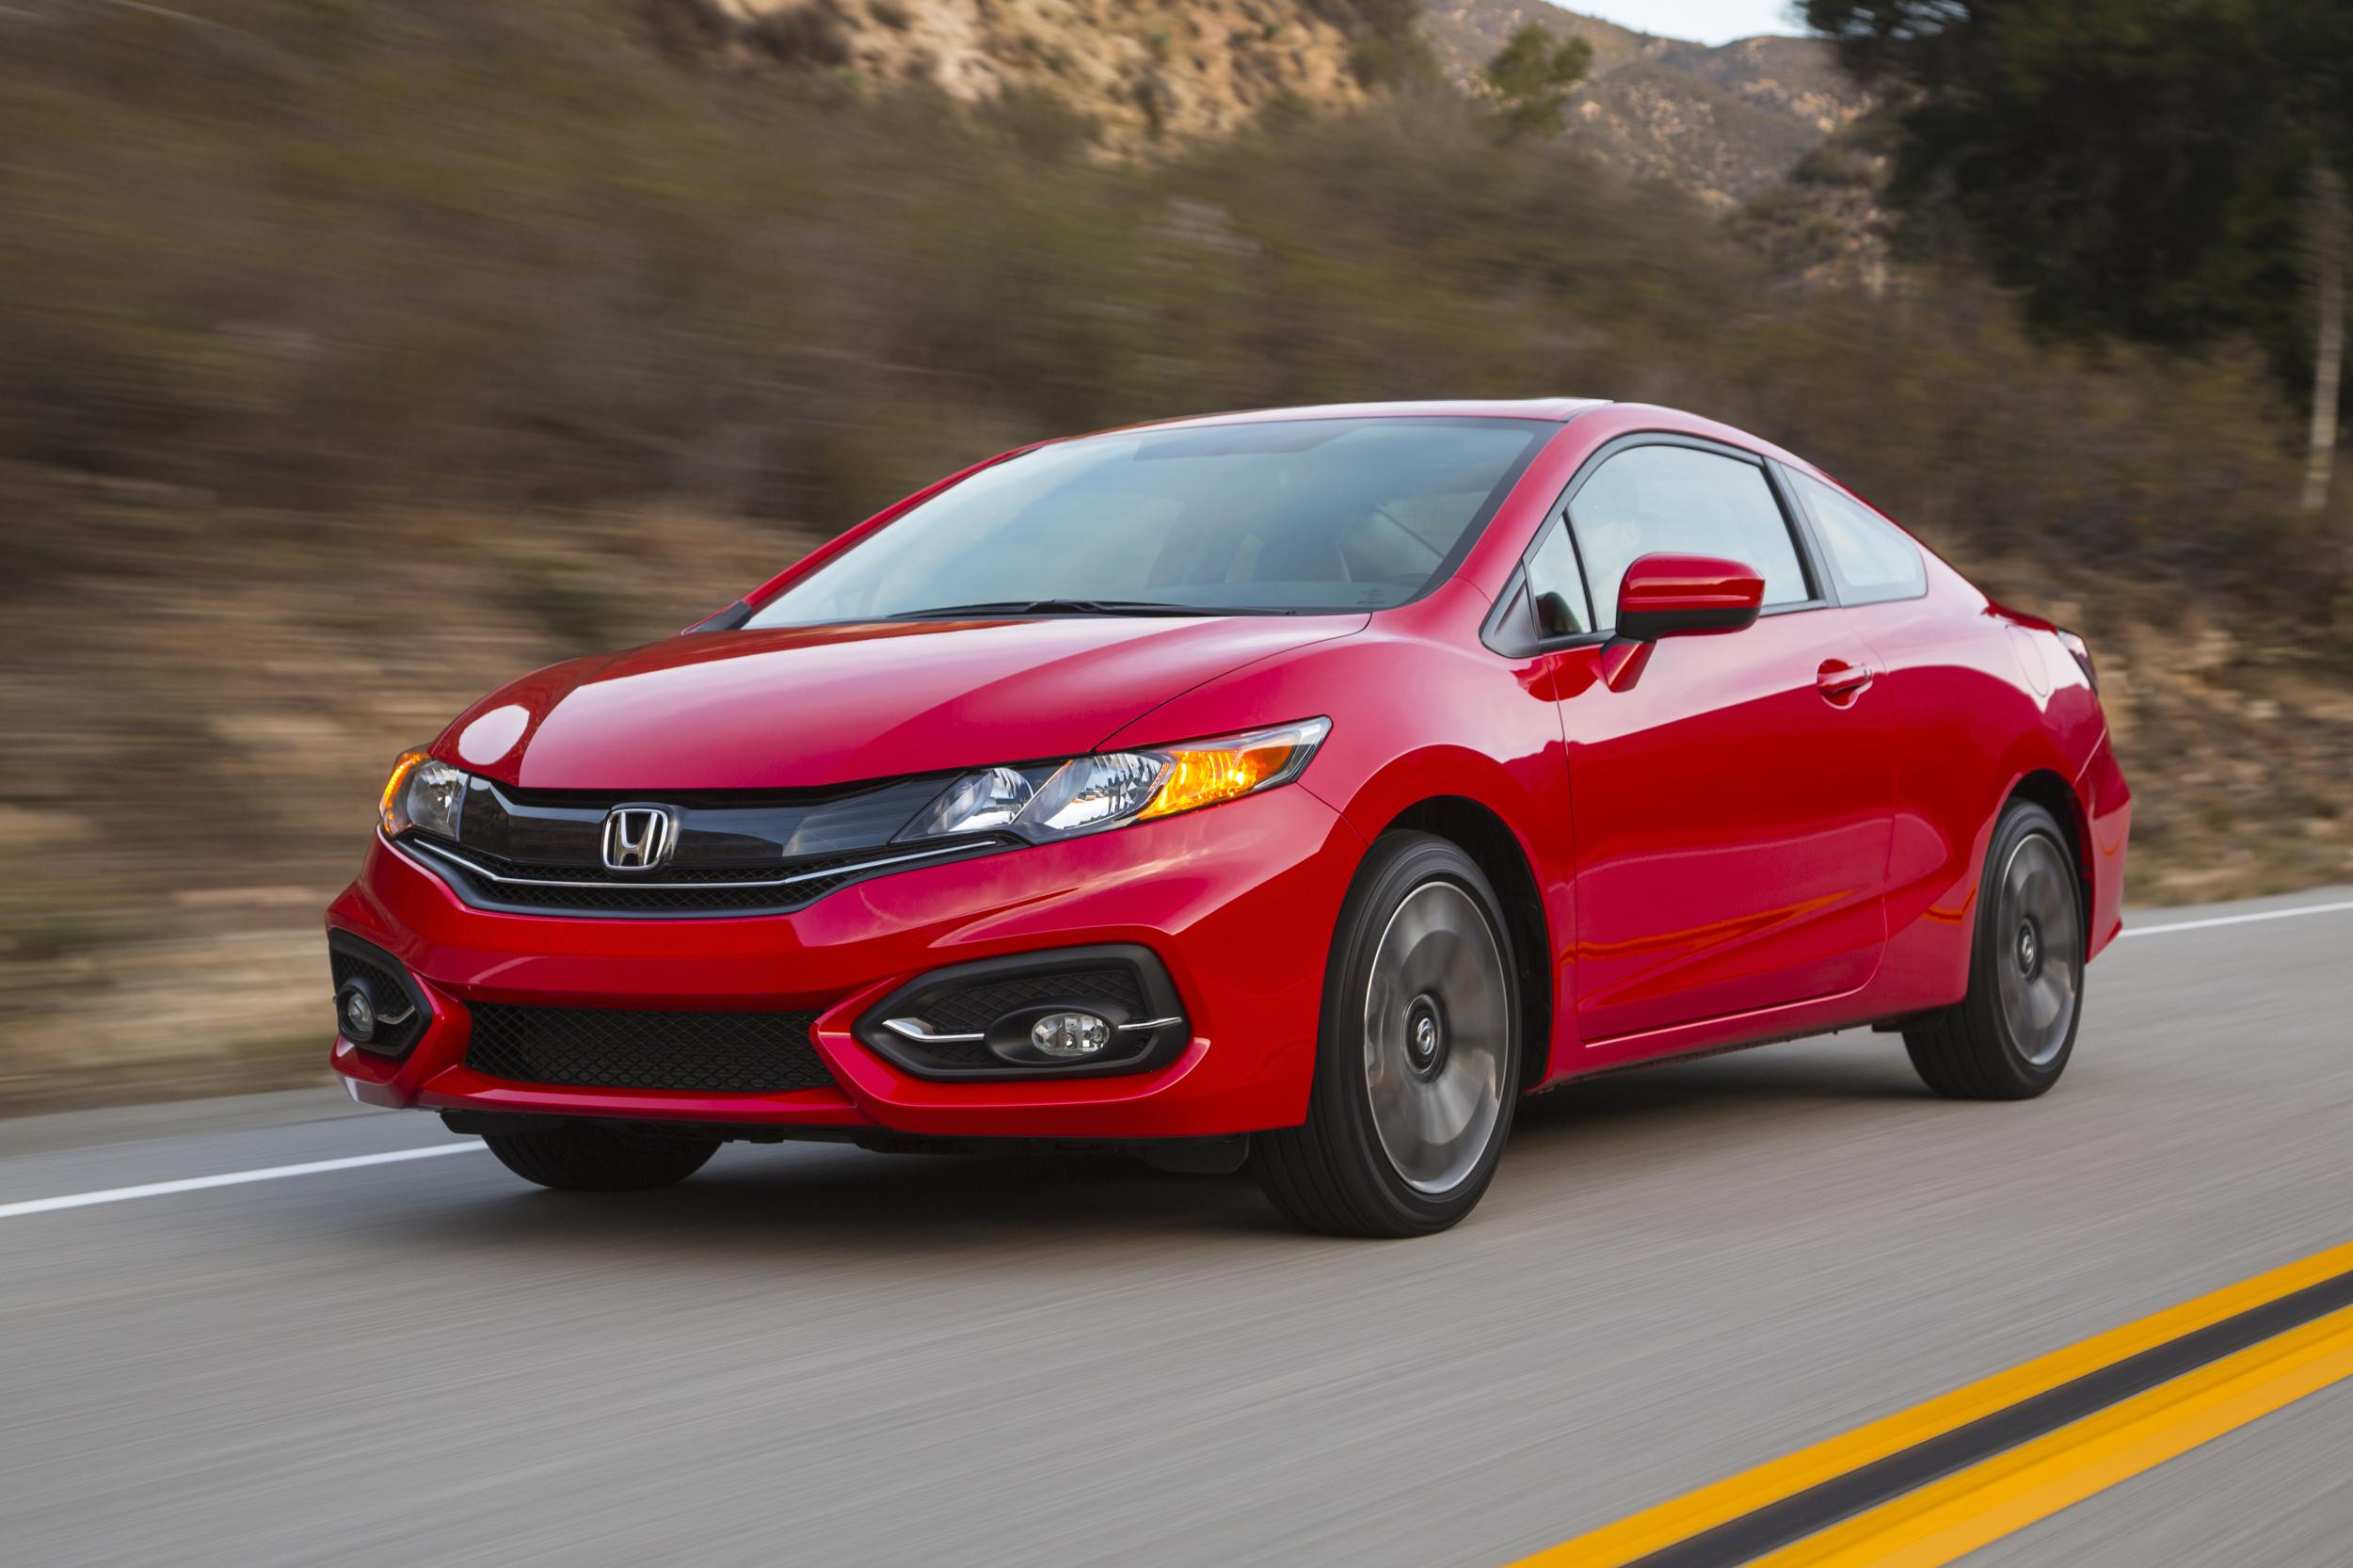 2015 Honda Civic #9